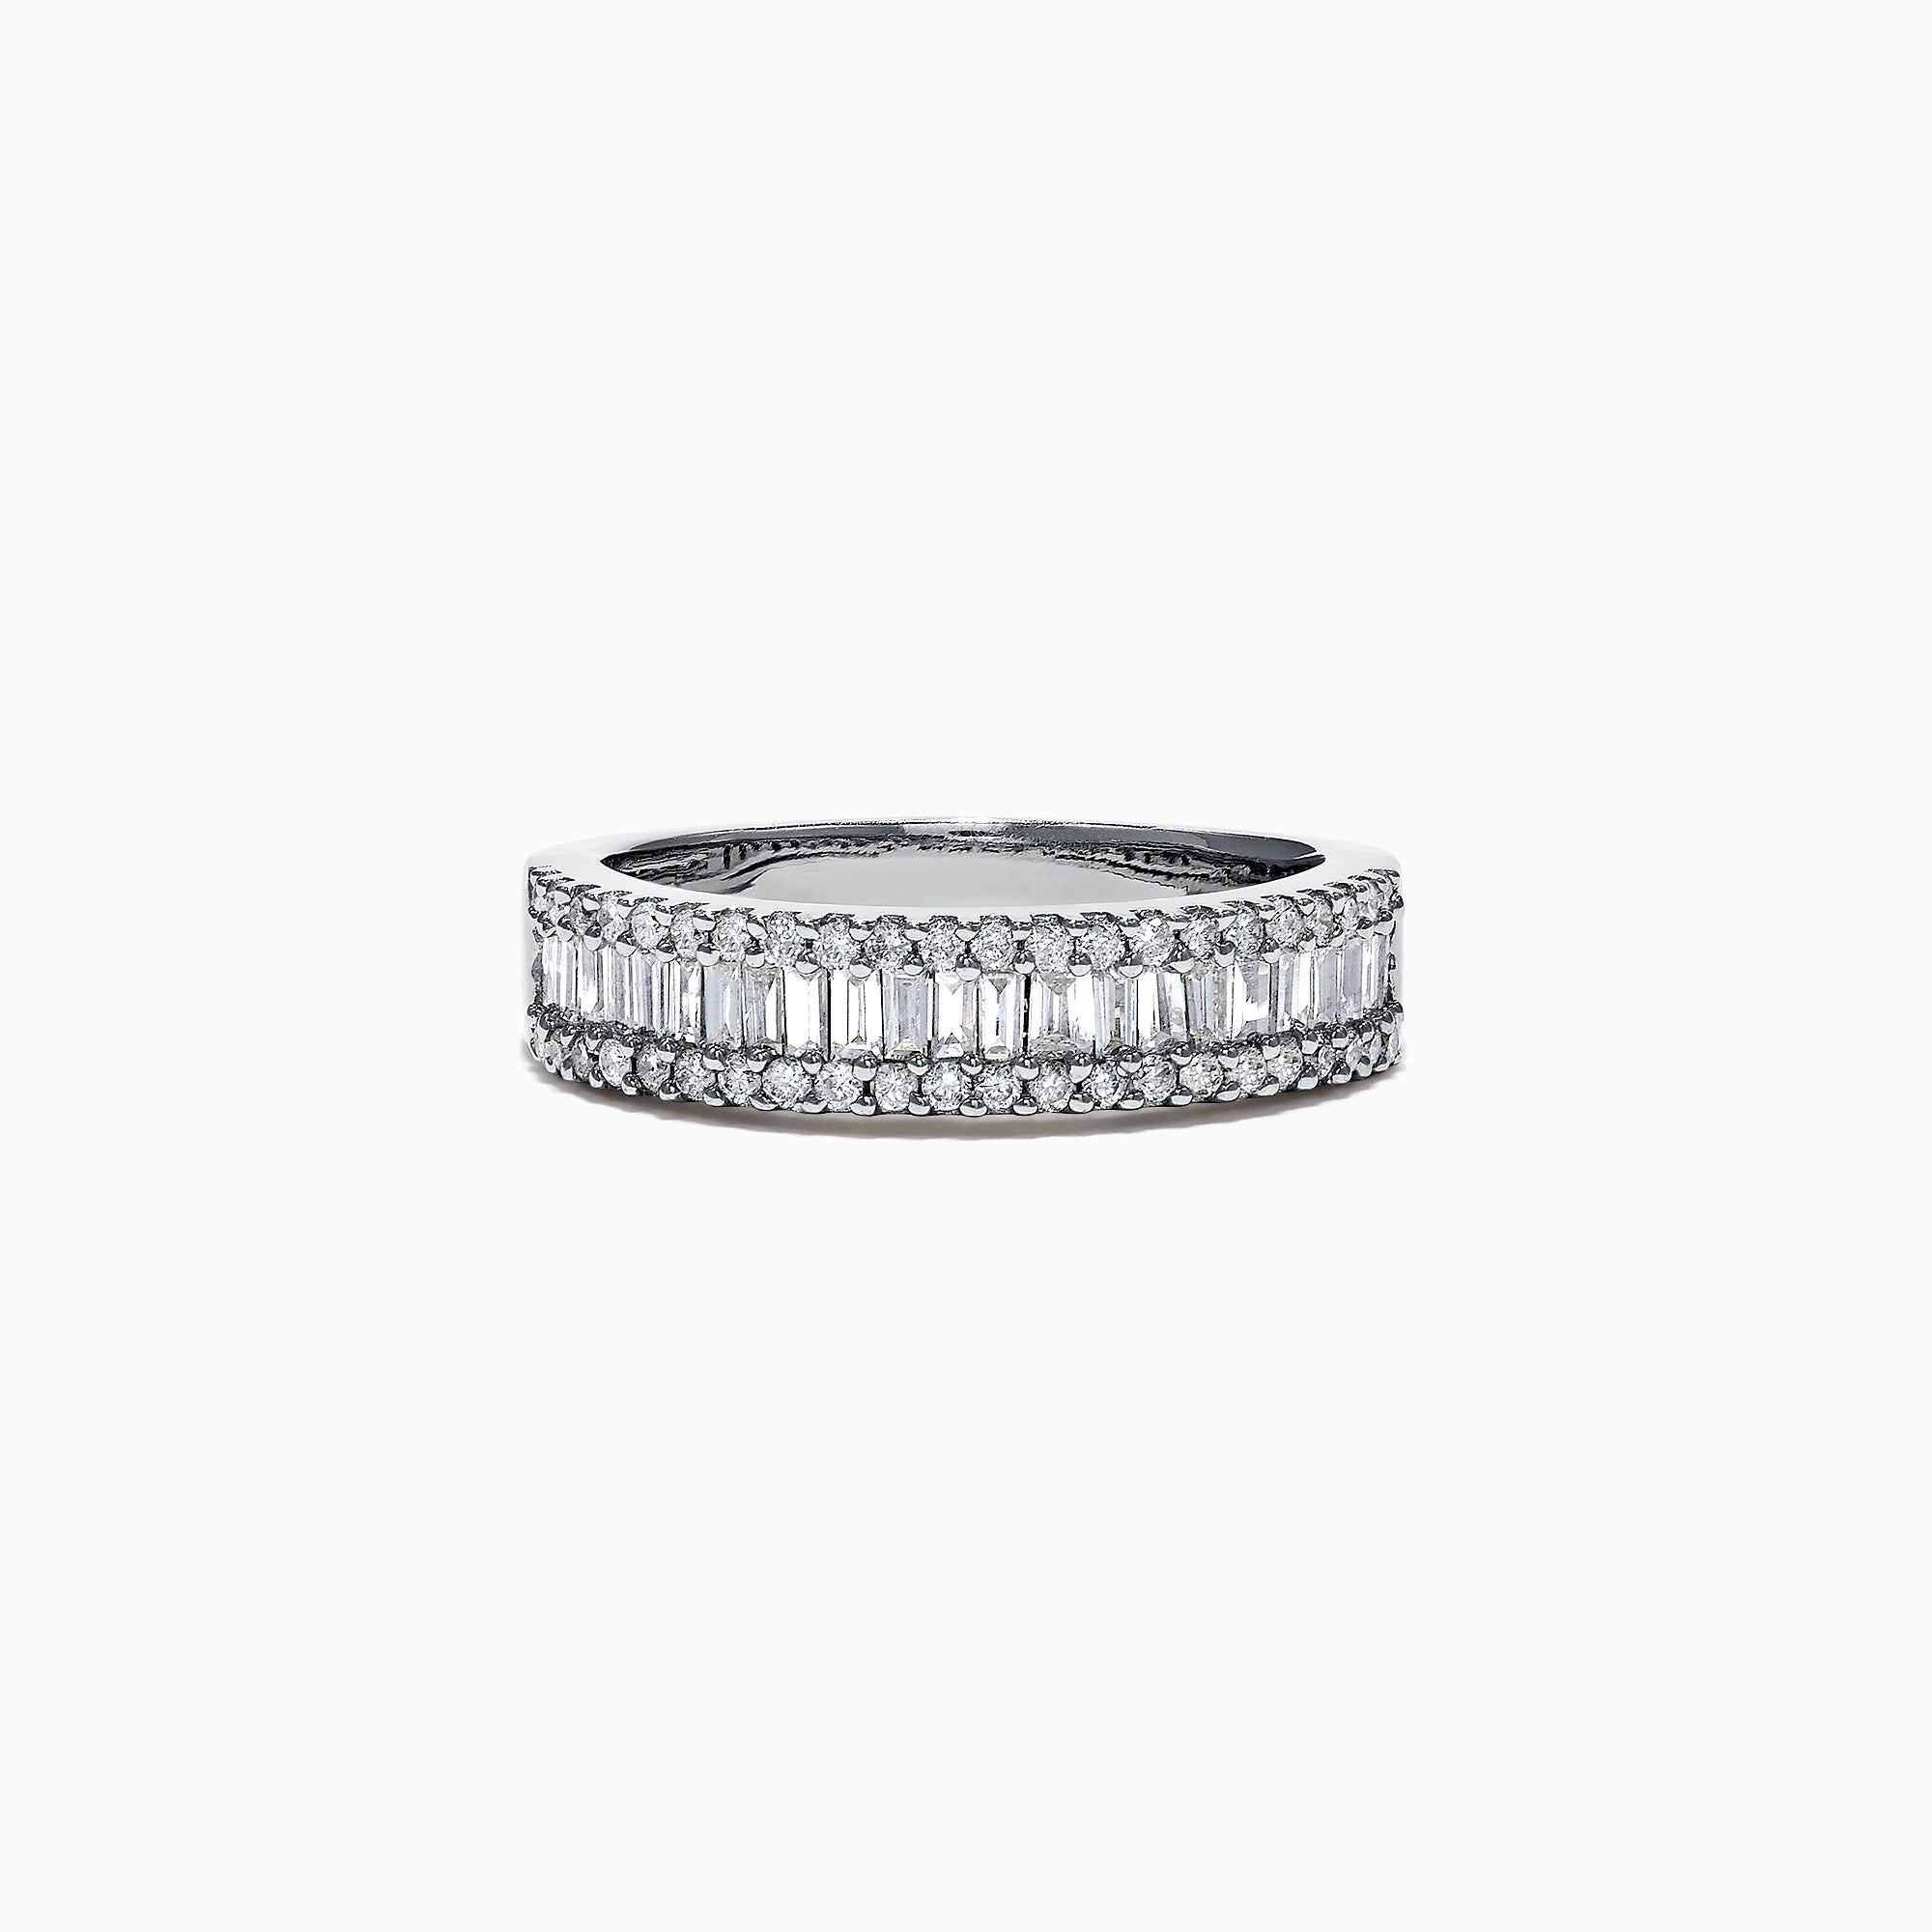 Effy Classique 14K White Gold Diamond Ring, 0.73 TCW